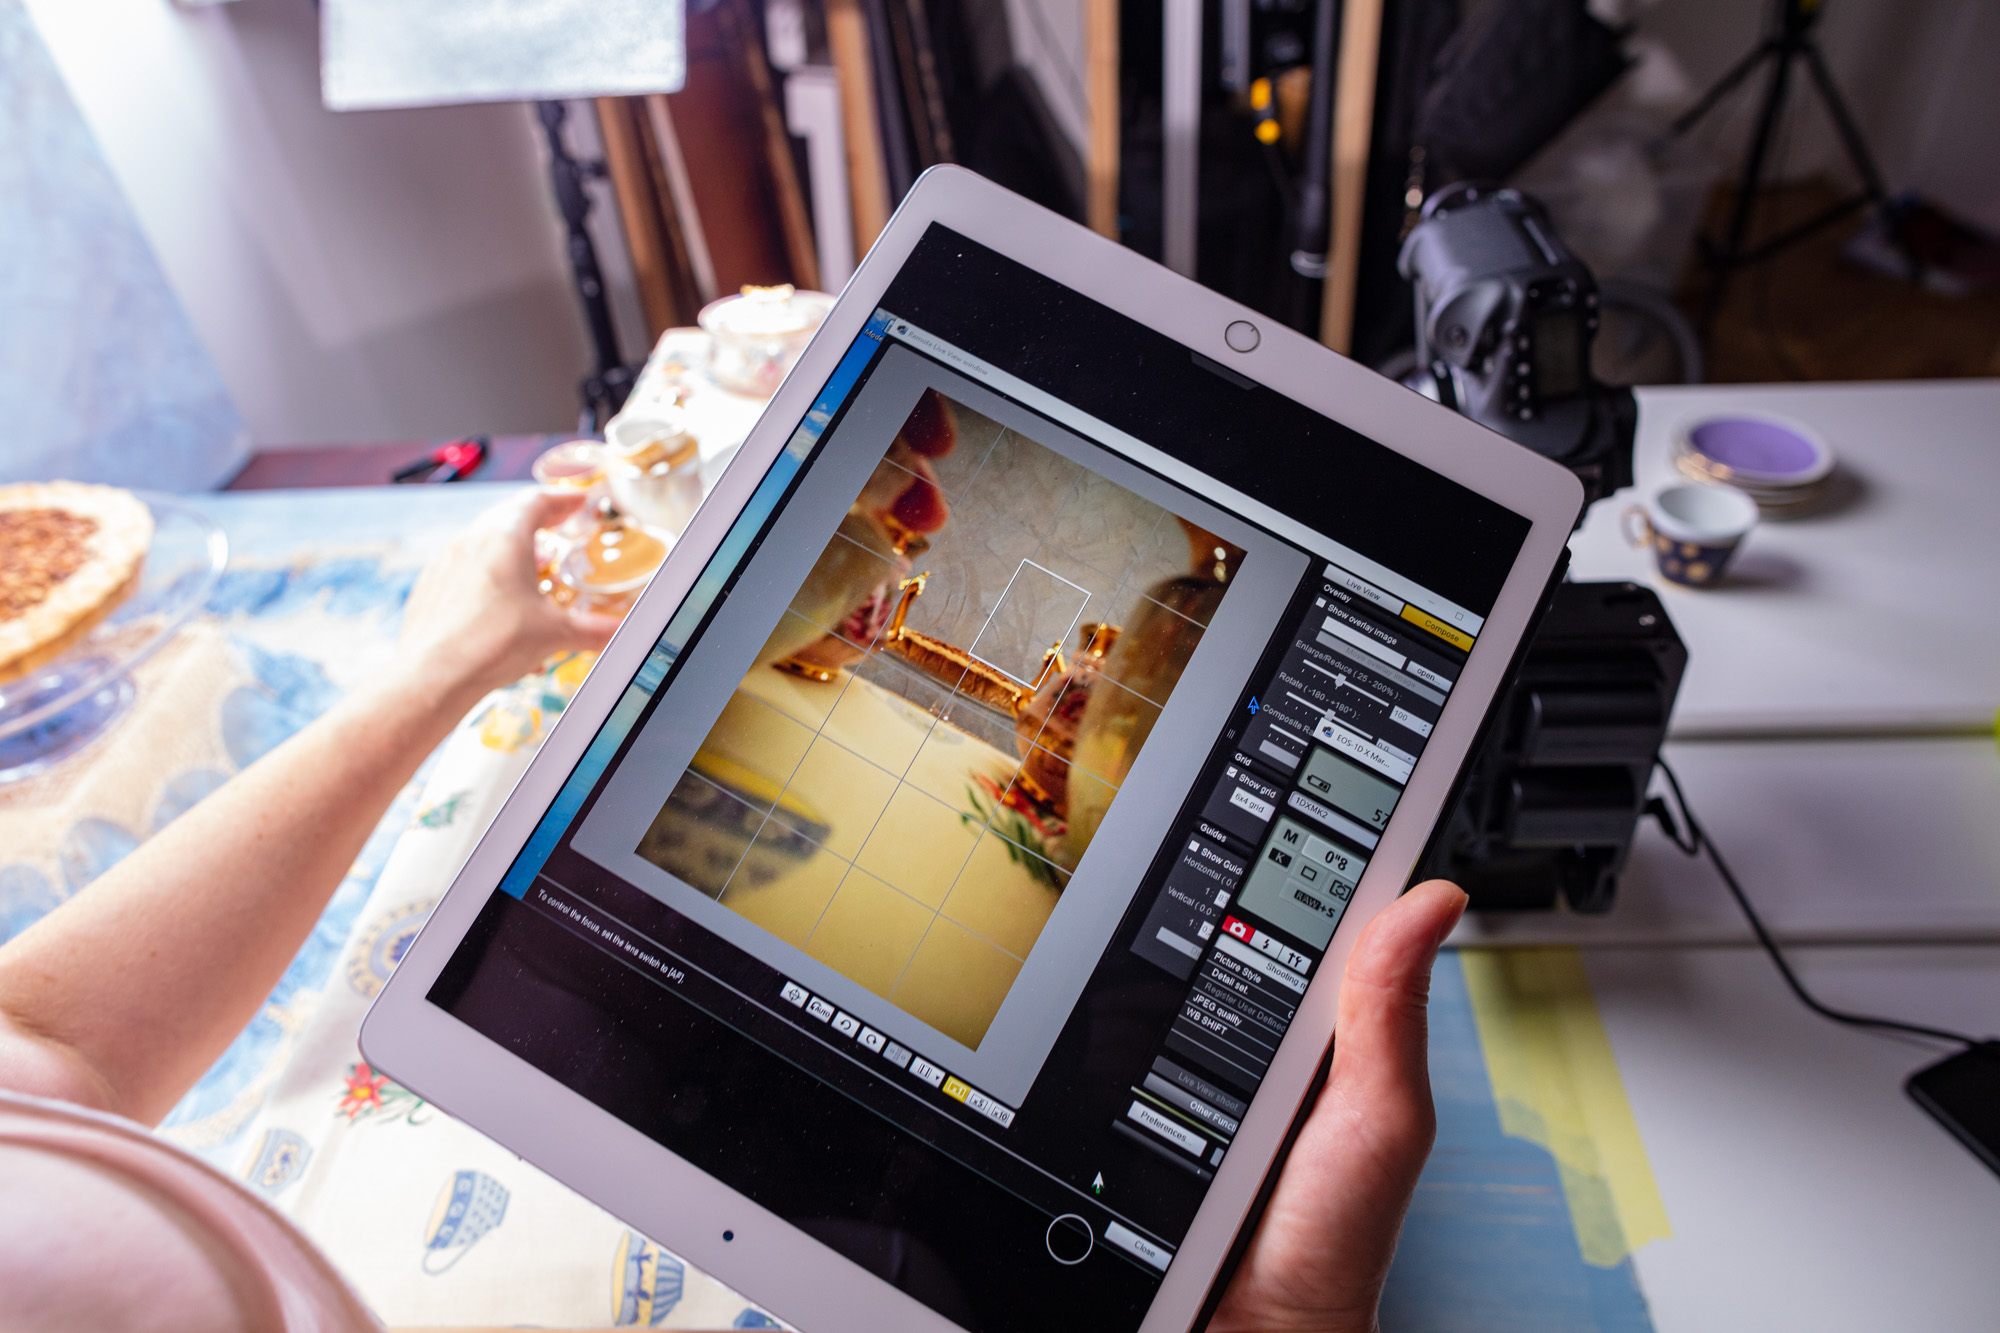 """Behind the scenes at the video production of """"Vegan Cherry Crumble Pie Recipe"""". The stylist/art director is checking the angle and camera movement on a monitor/Ipad."""